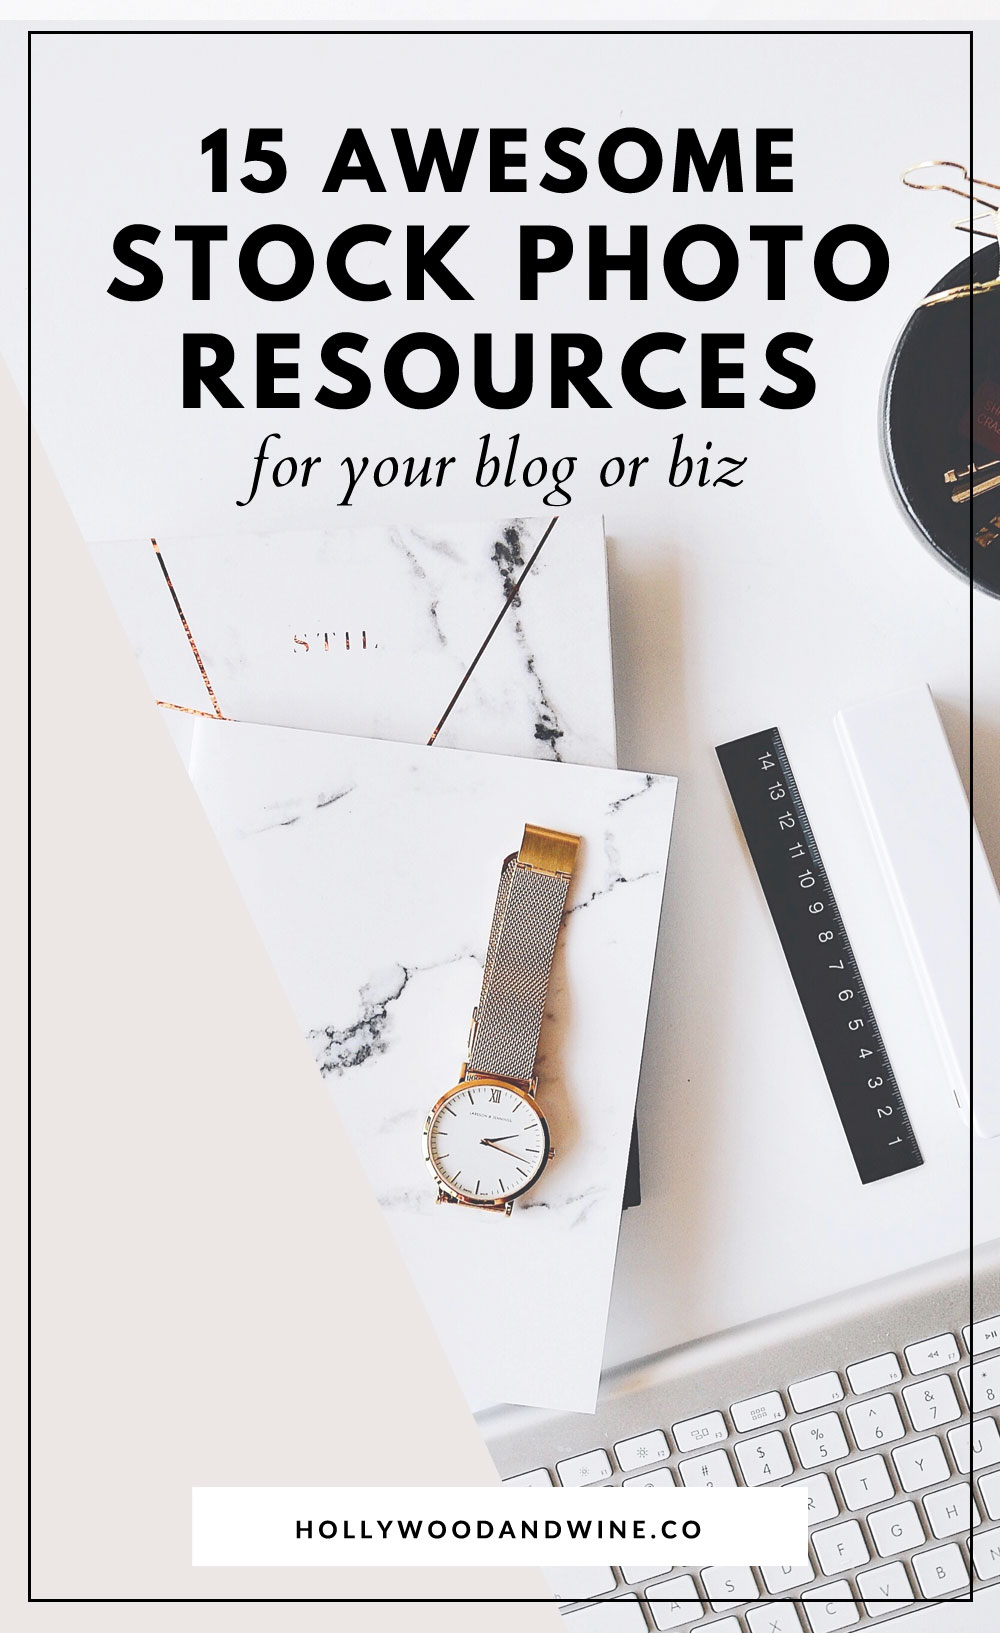 Stock photo resources for your blog or biz